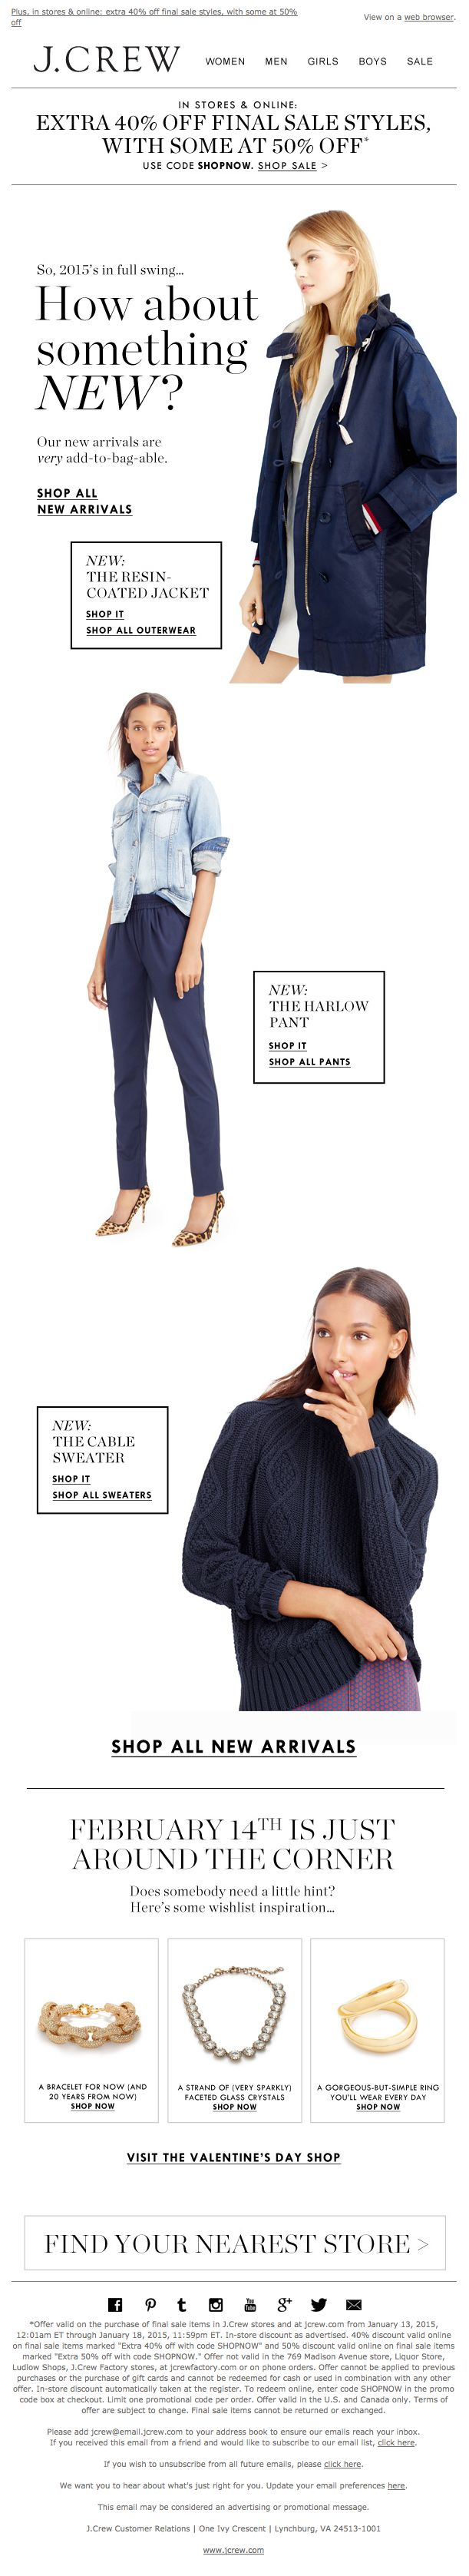 New arrivals email from J.Crew. #jcrew #emaildesign #arrivals